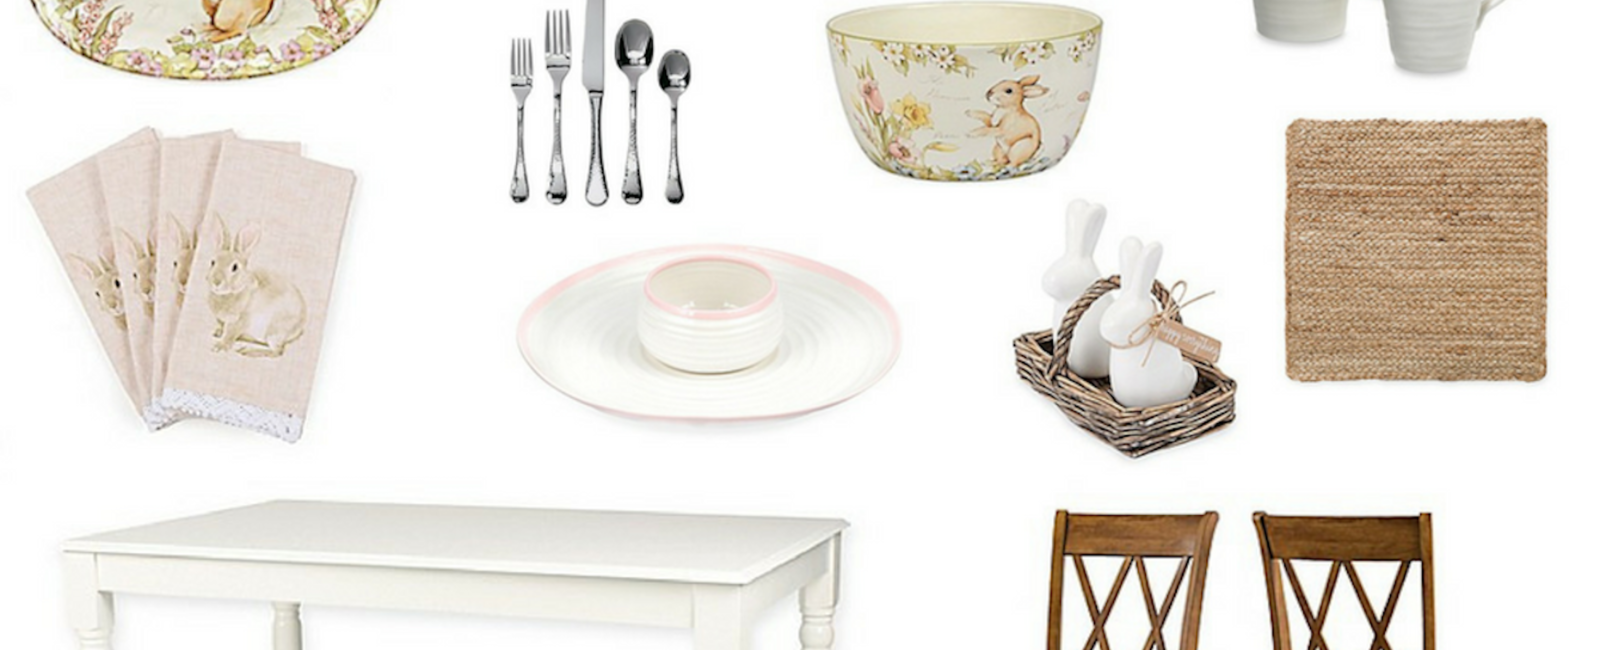 Spring TableScape with Bed Bath & Beyond